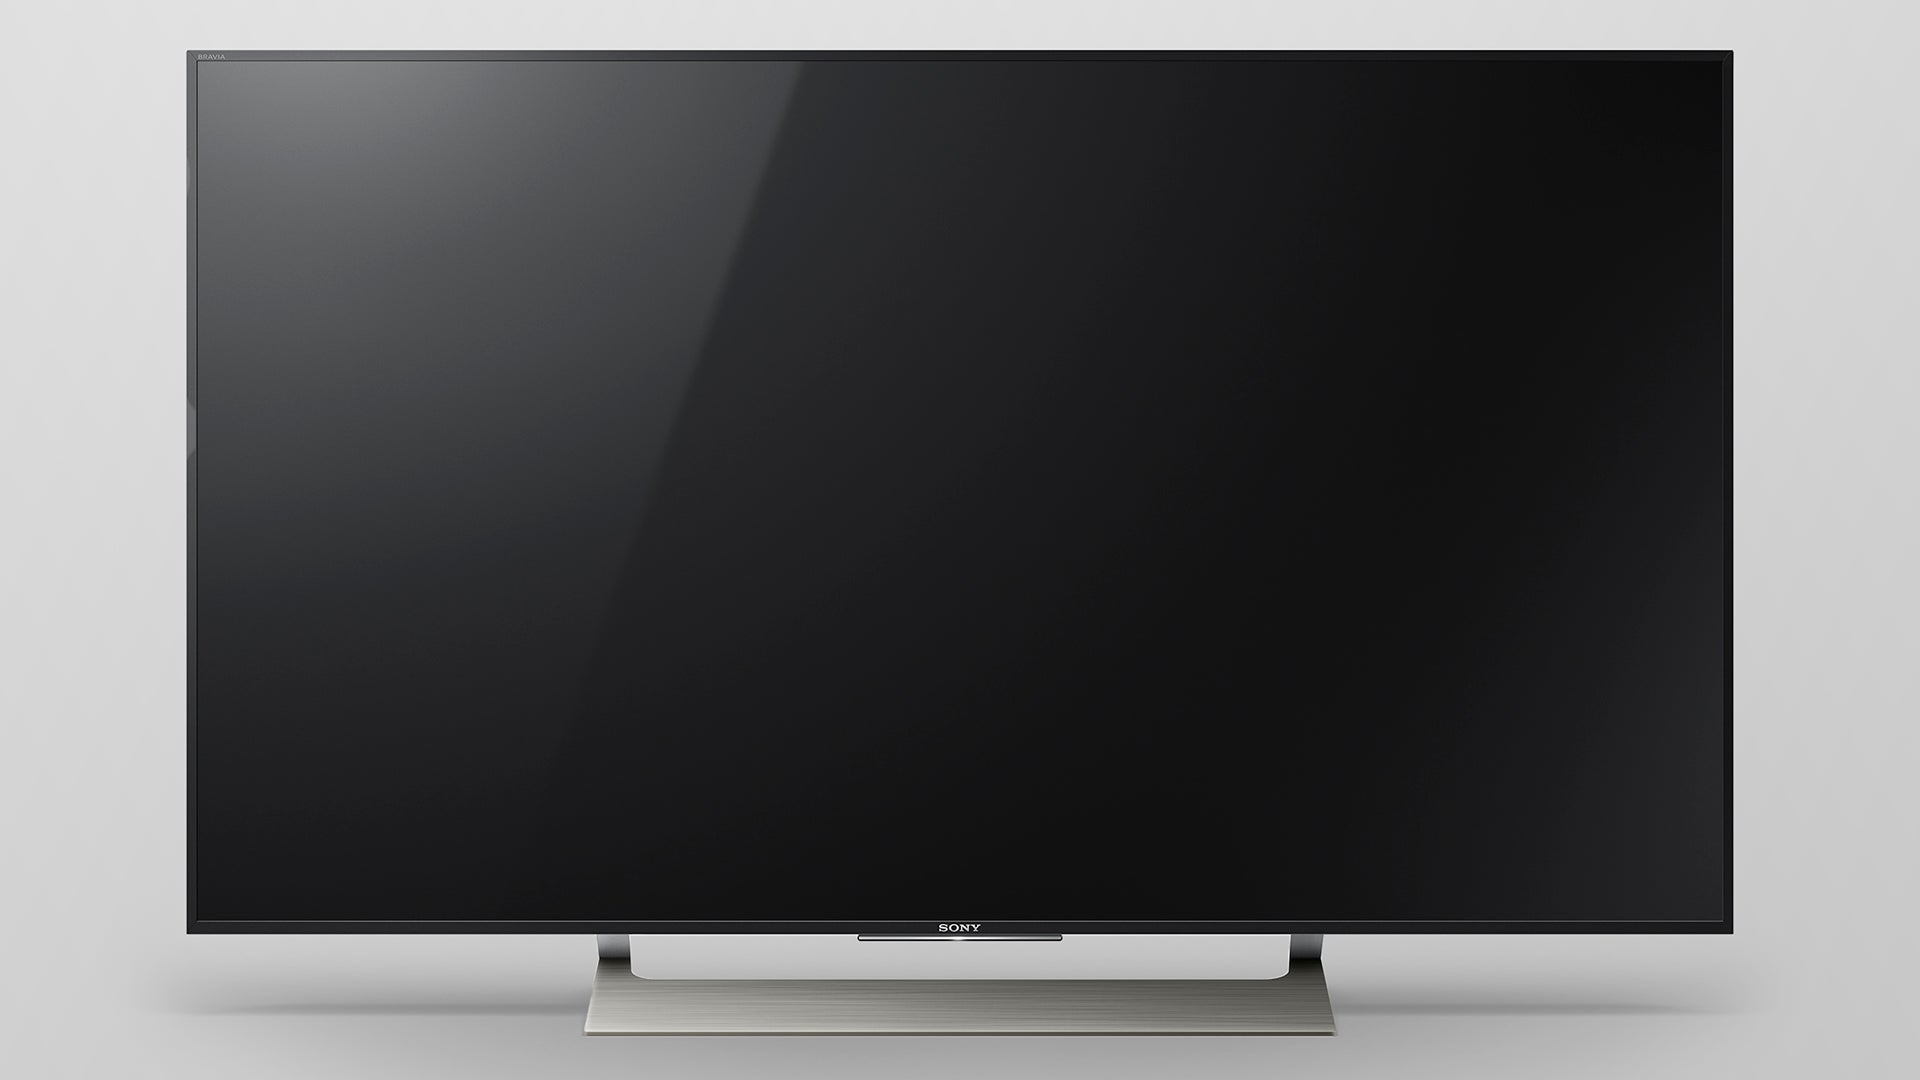 Sony Bravia Kd 65xe9005bu Review Trusted Reviews